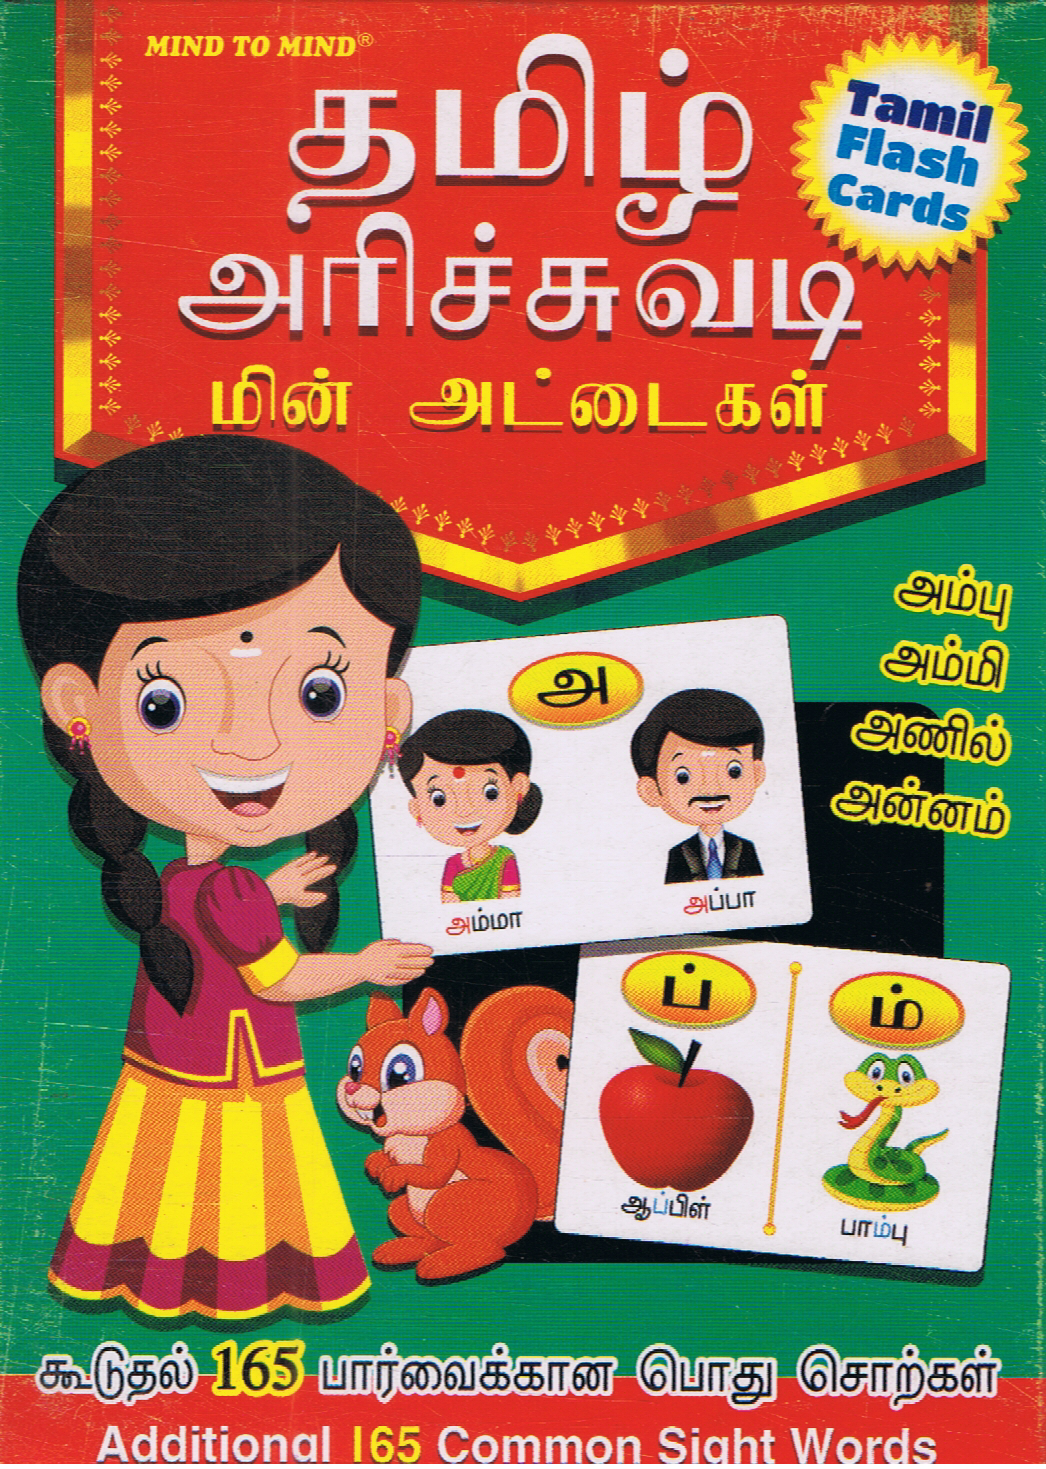 Tamil Flash Cards Additional 165 Common Sight Words